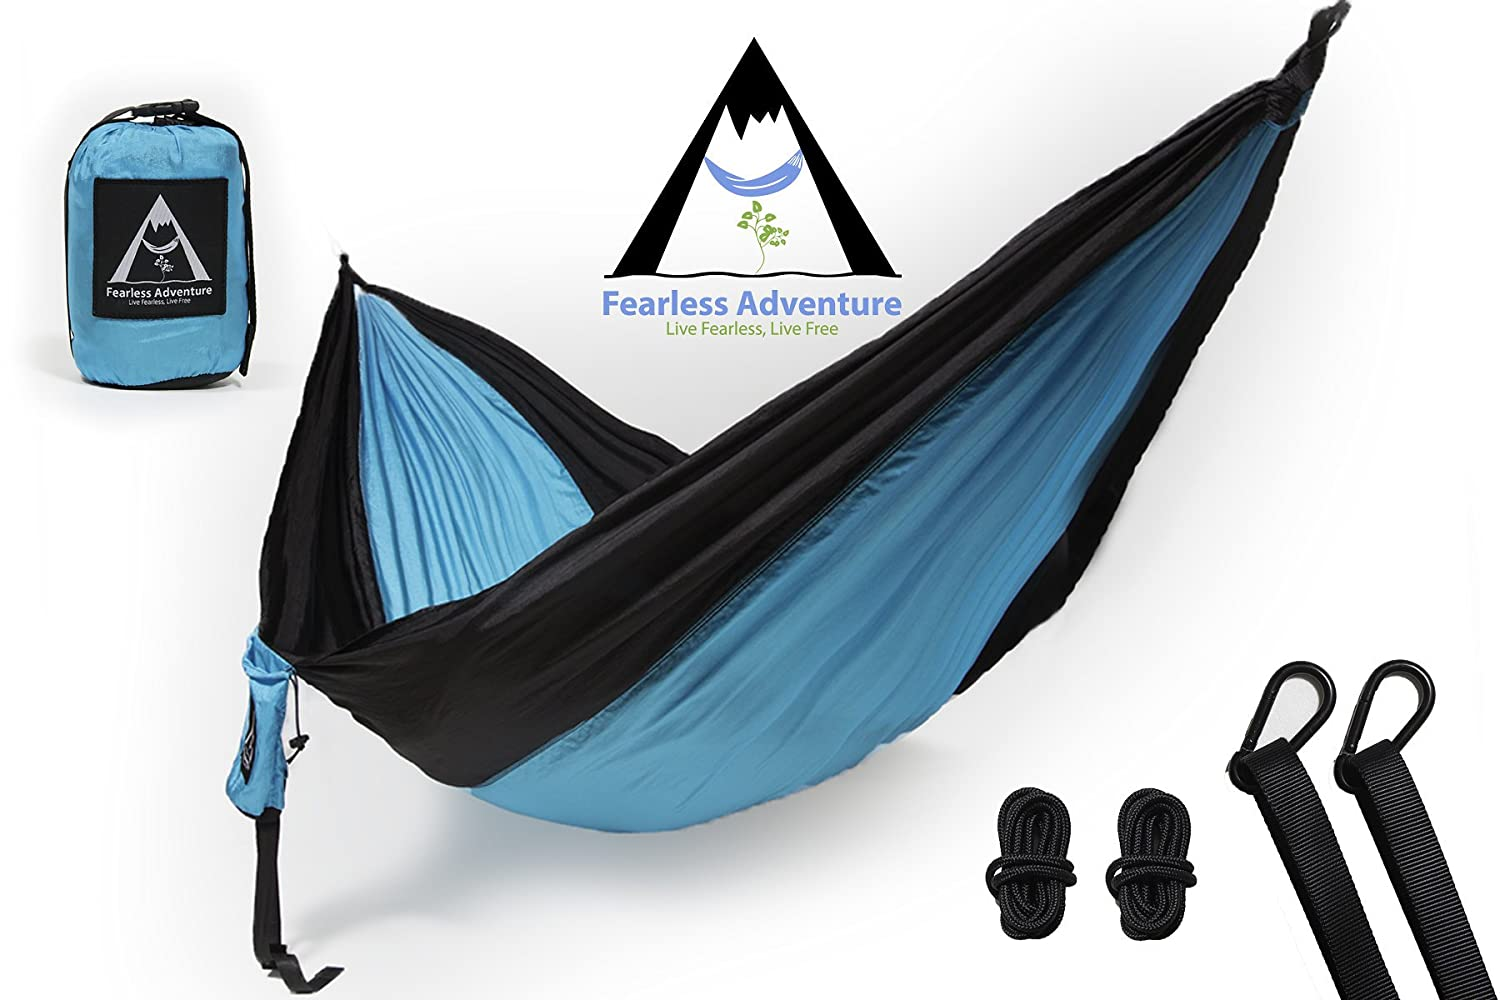 The Fearless Adventure Single and Double Camping Hammocks, Portable Hammock, Outdoor Hammock Triple Stitched, 100 Parachute Nylon, End Straps, Carabiners, Rope, Lightweight